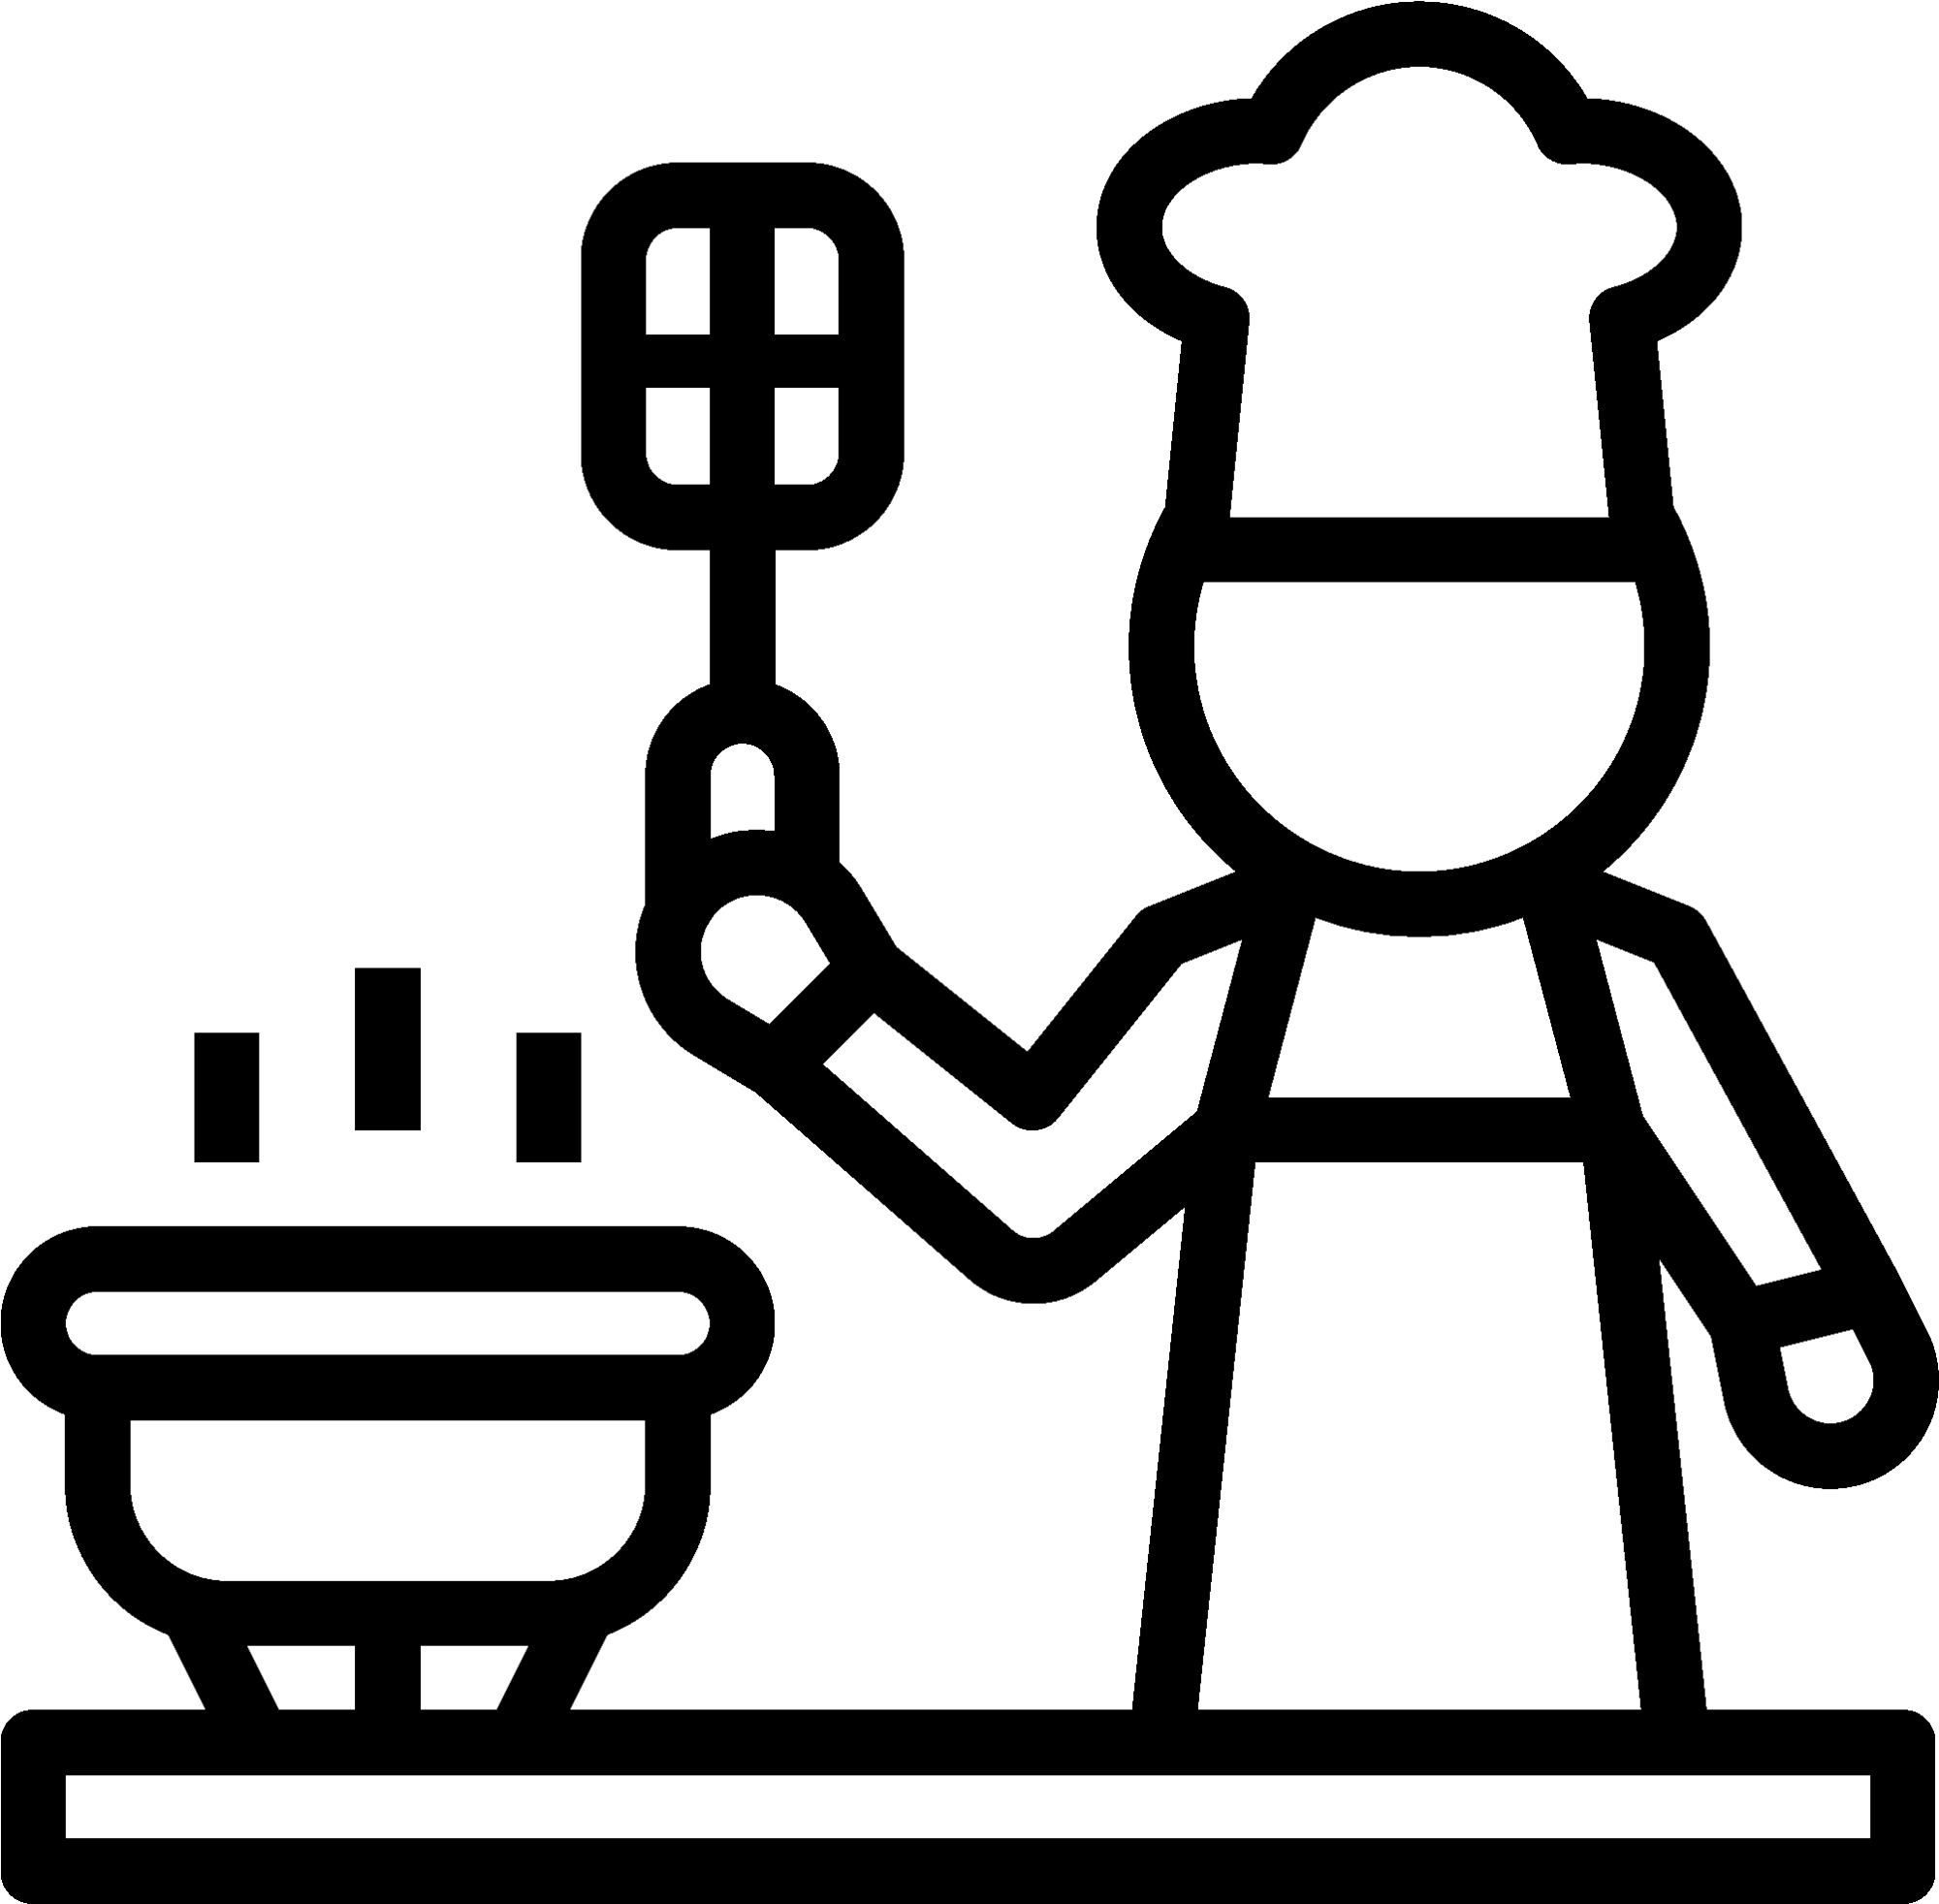 hight resolution of eat healthy clip art menus you design hobbies icon cooking clipart